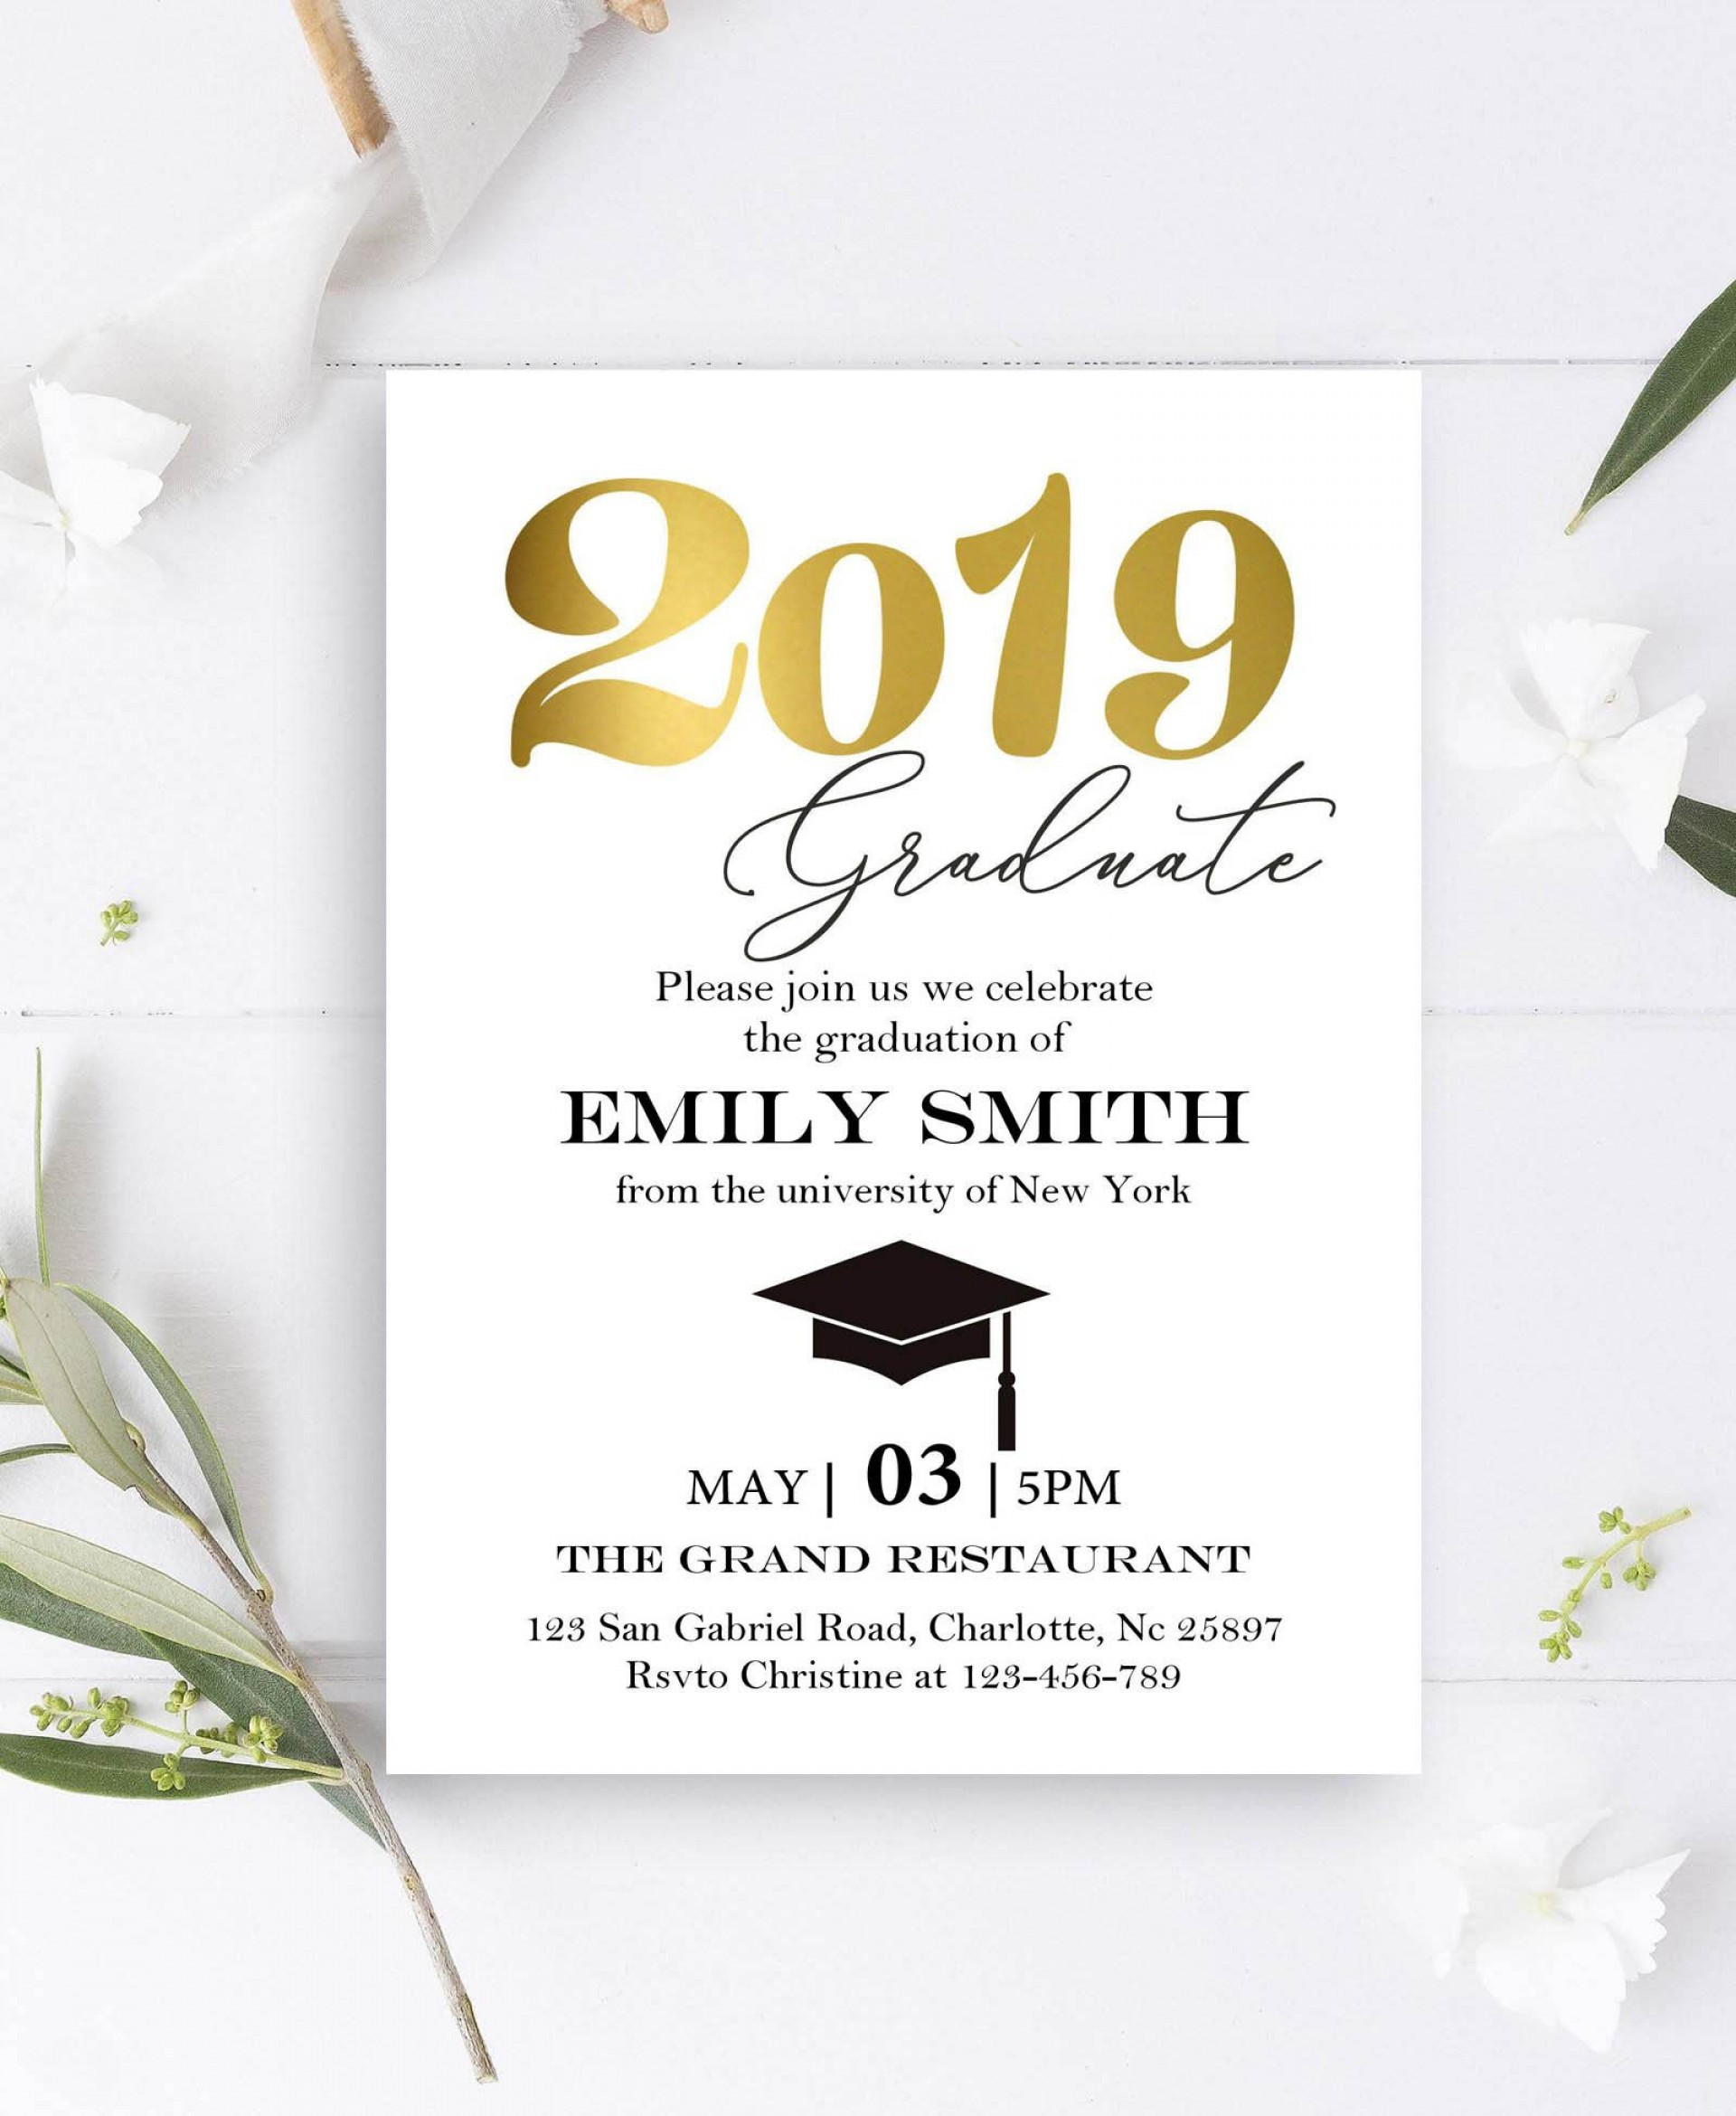 004 Impressive College Graduation Invitation Template Design  Templates Free Party1920